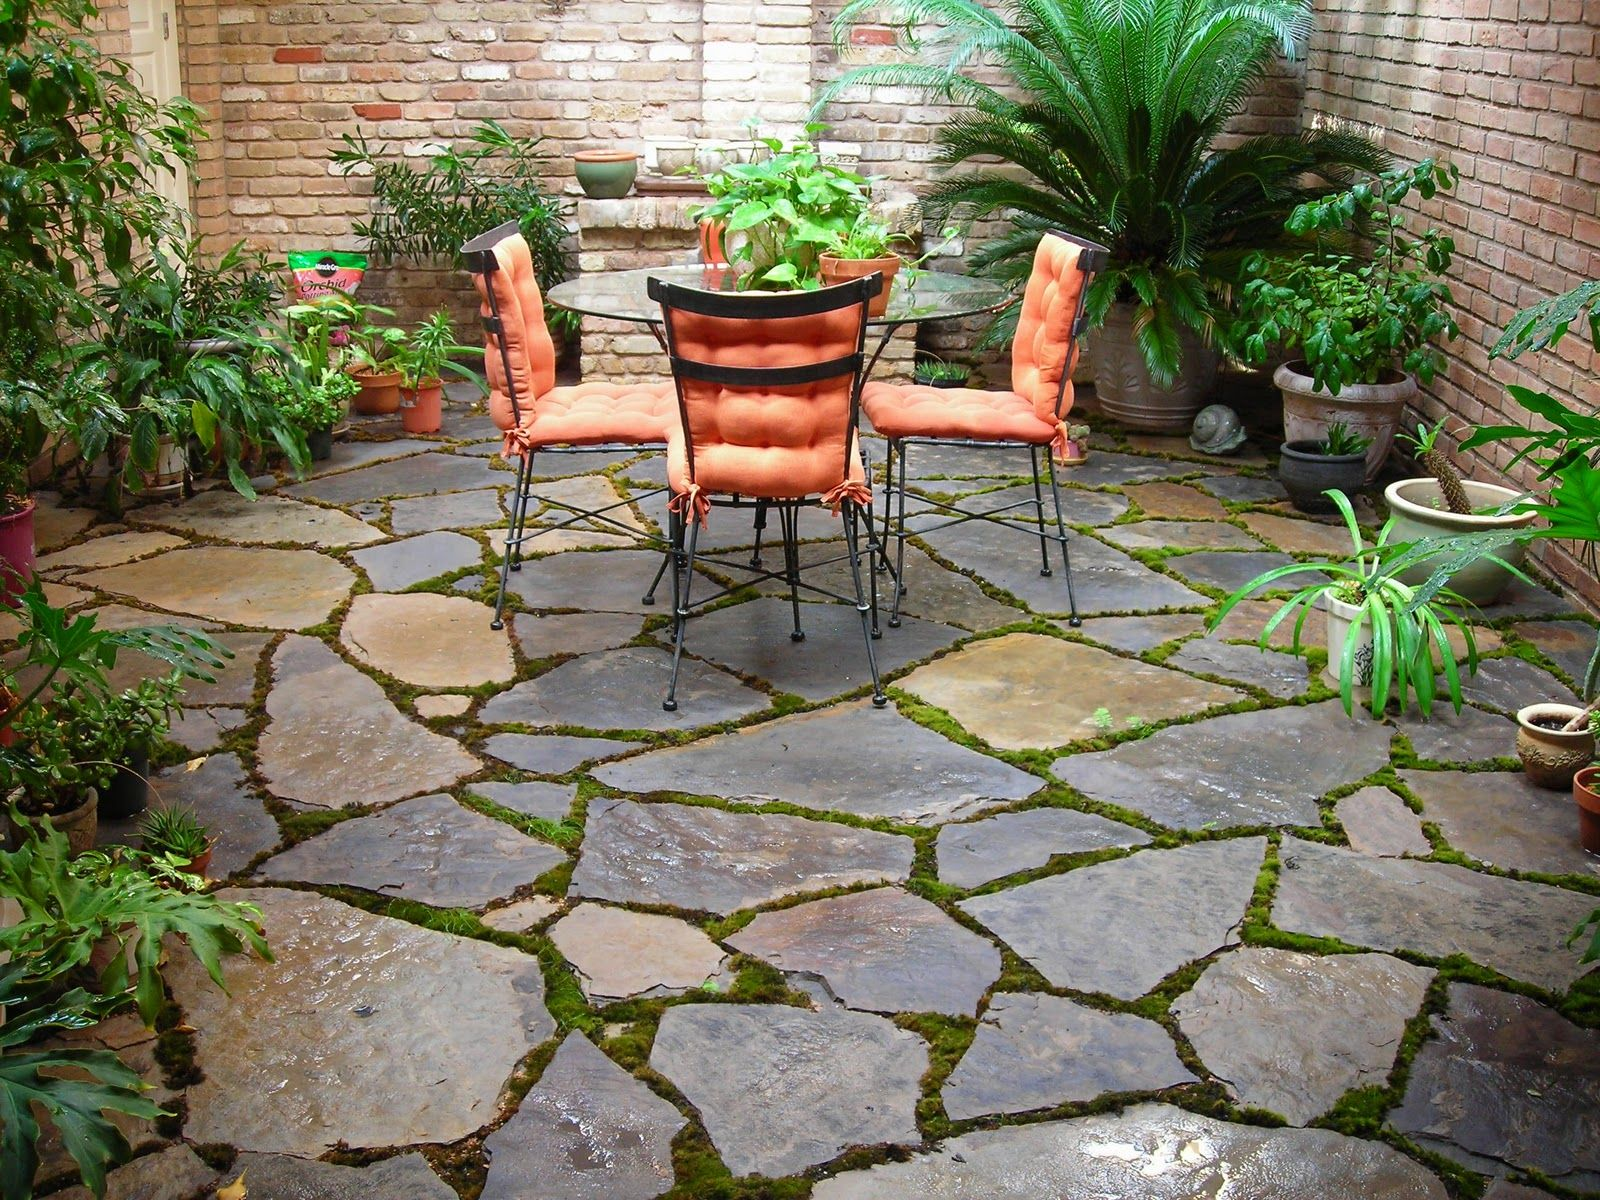 Patio Decor Building A Patio With Pavers With Stone Patio Design Ideas  Paving Stone Patio Design Ideas Paver Also Flagstone Paver Patio Flagstone  Patio ...